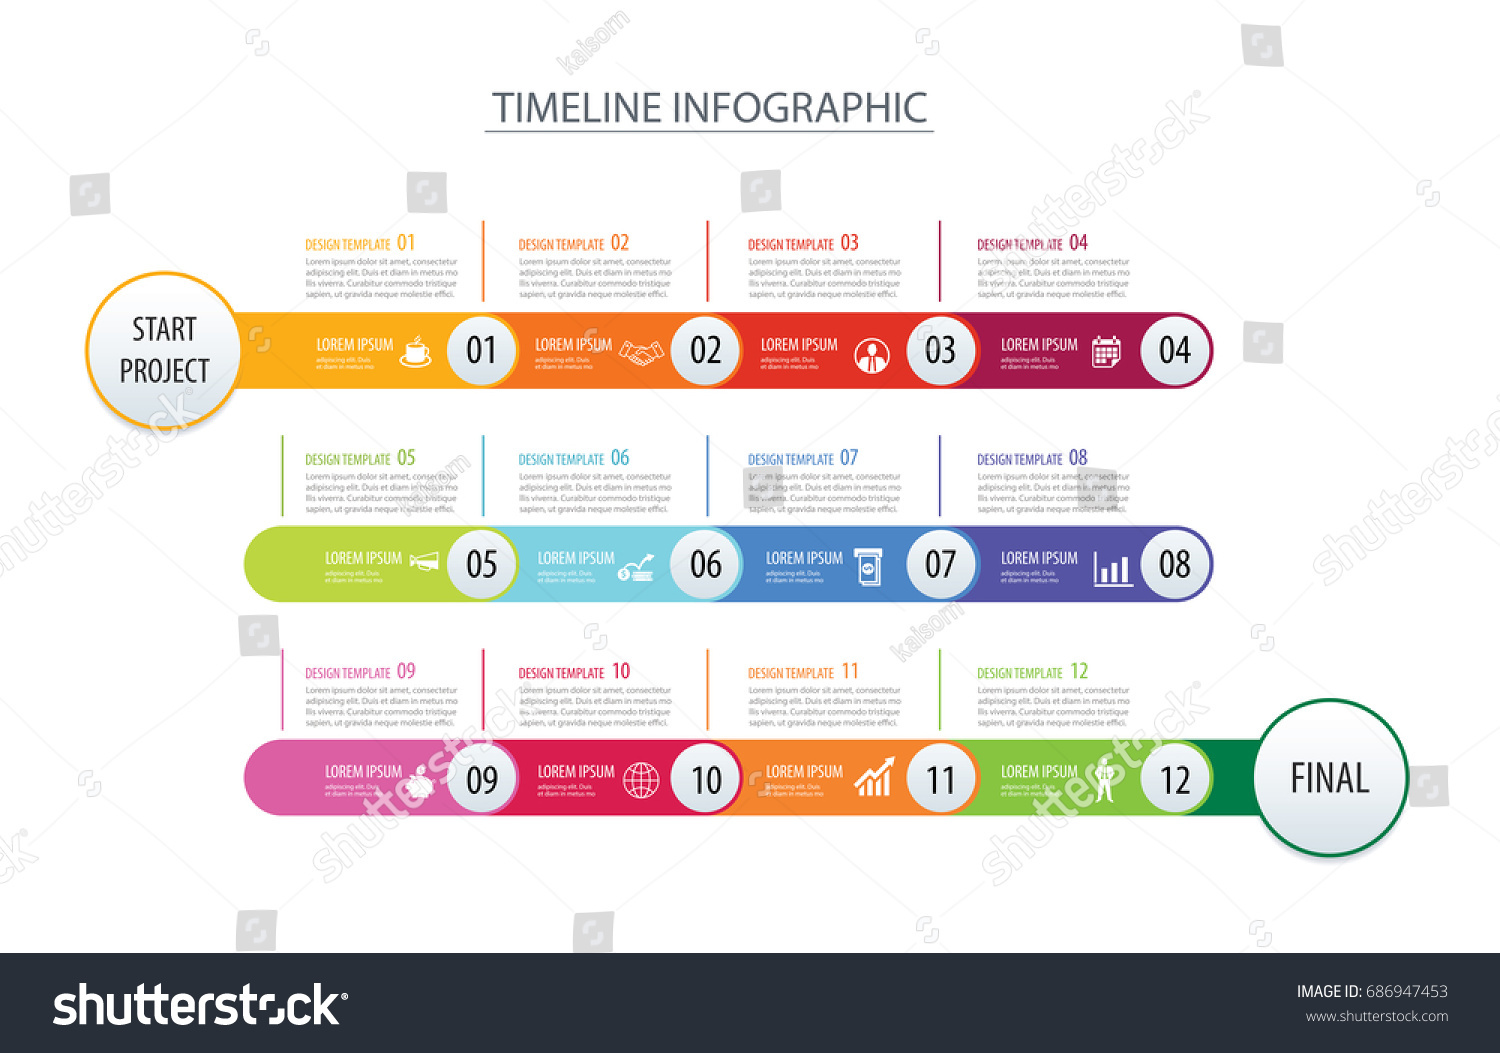 Infographic Timeline 1 Year 12 Month Stock Vector 686947453 ...